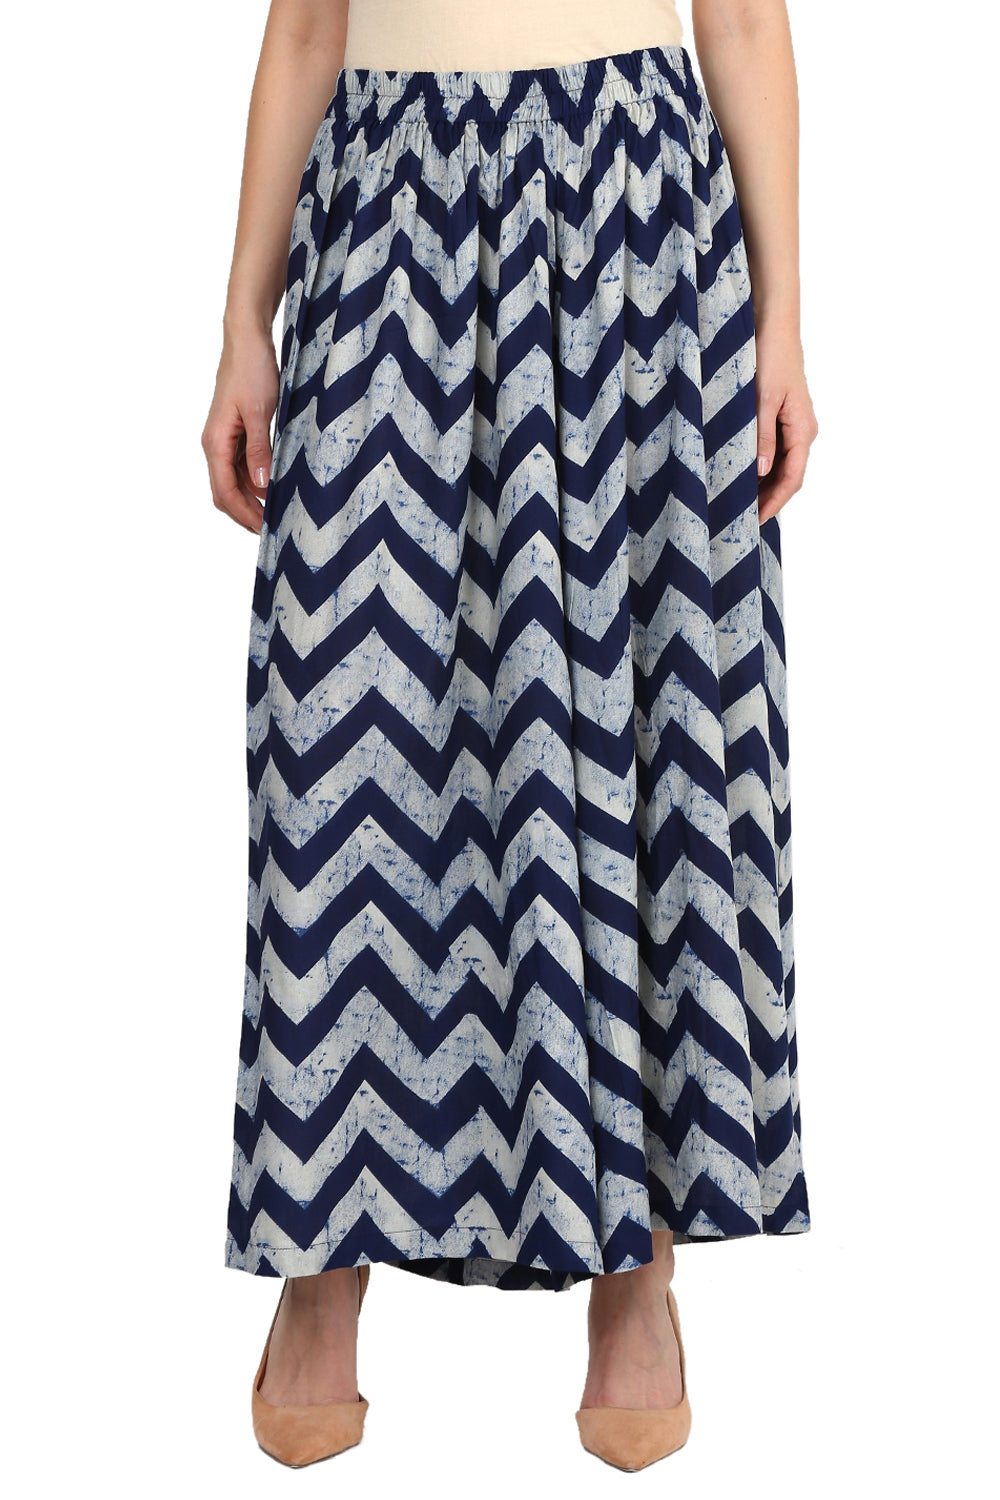 Castle Navy Blue Printed Rayon Palazzo - Castle Lifestyle